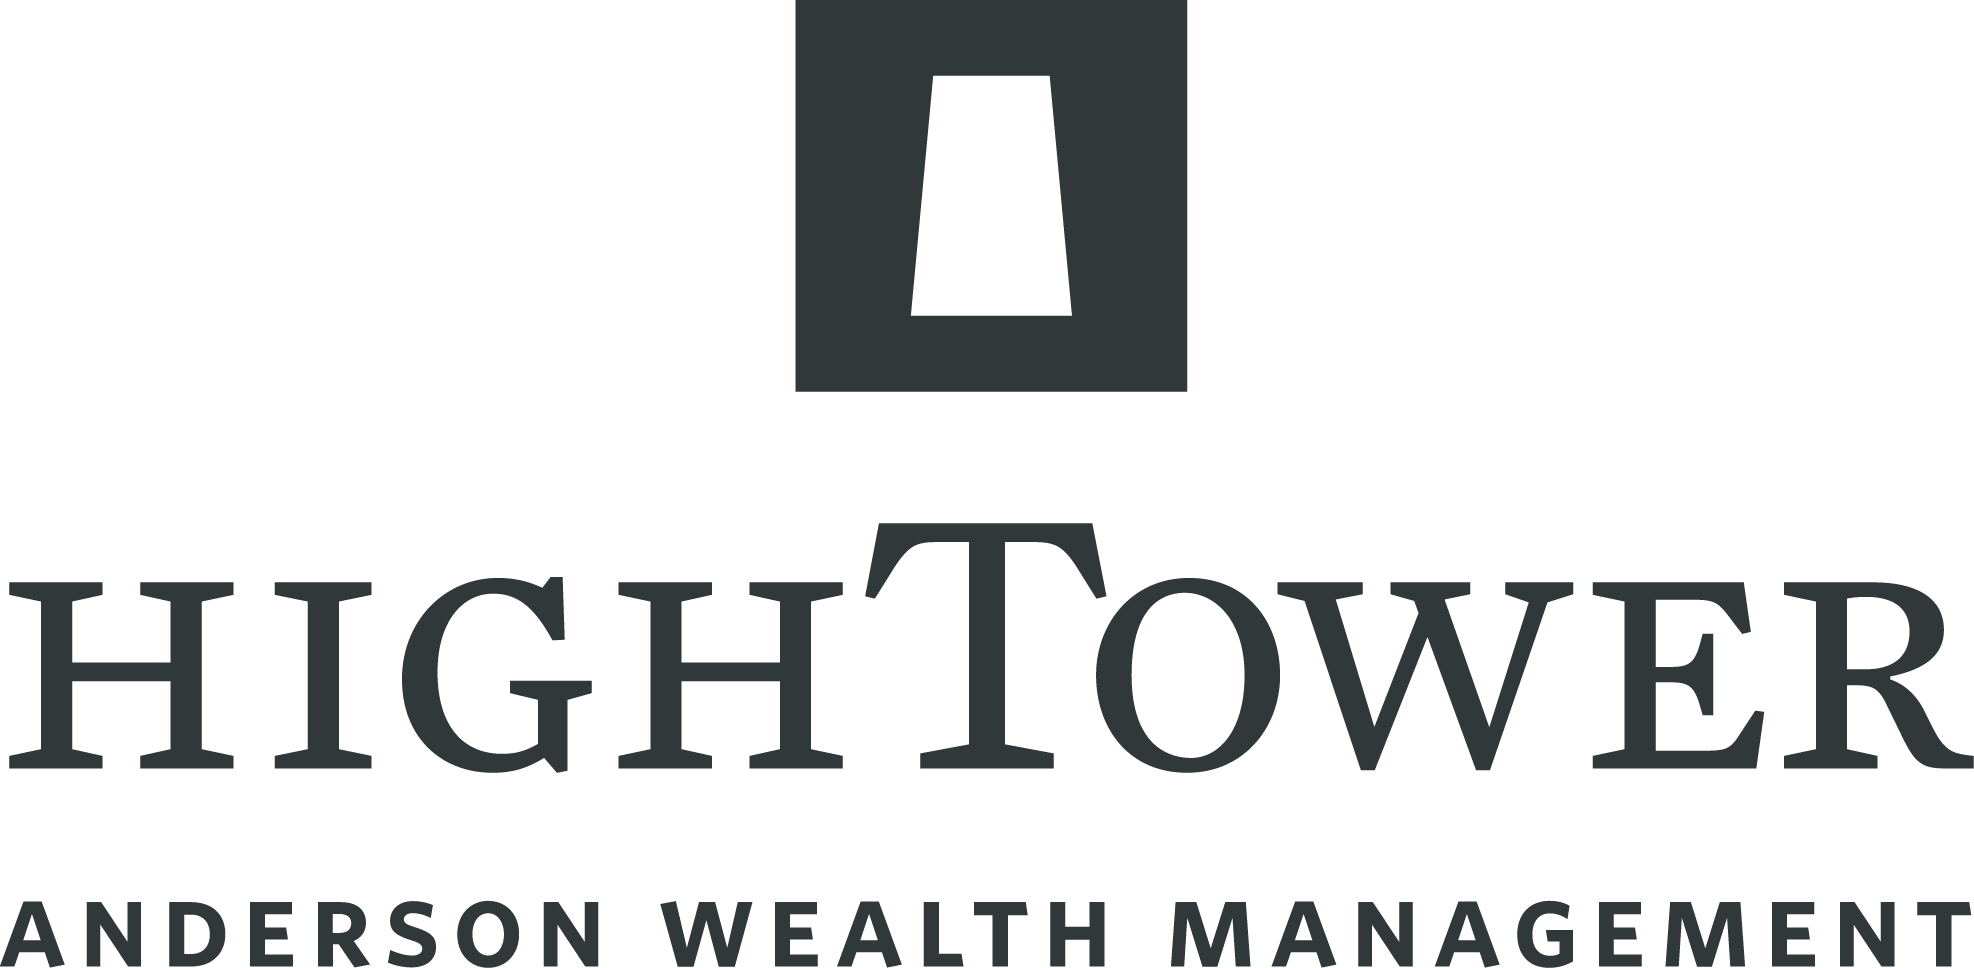 Hightower Anderson Wealth Management